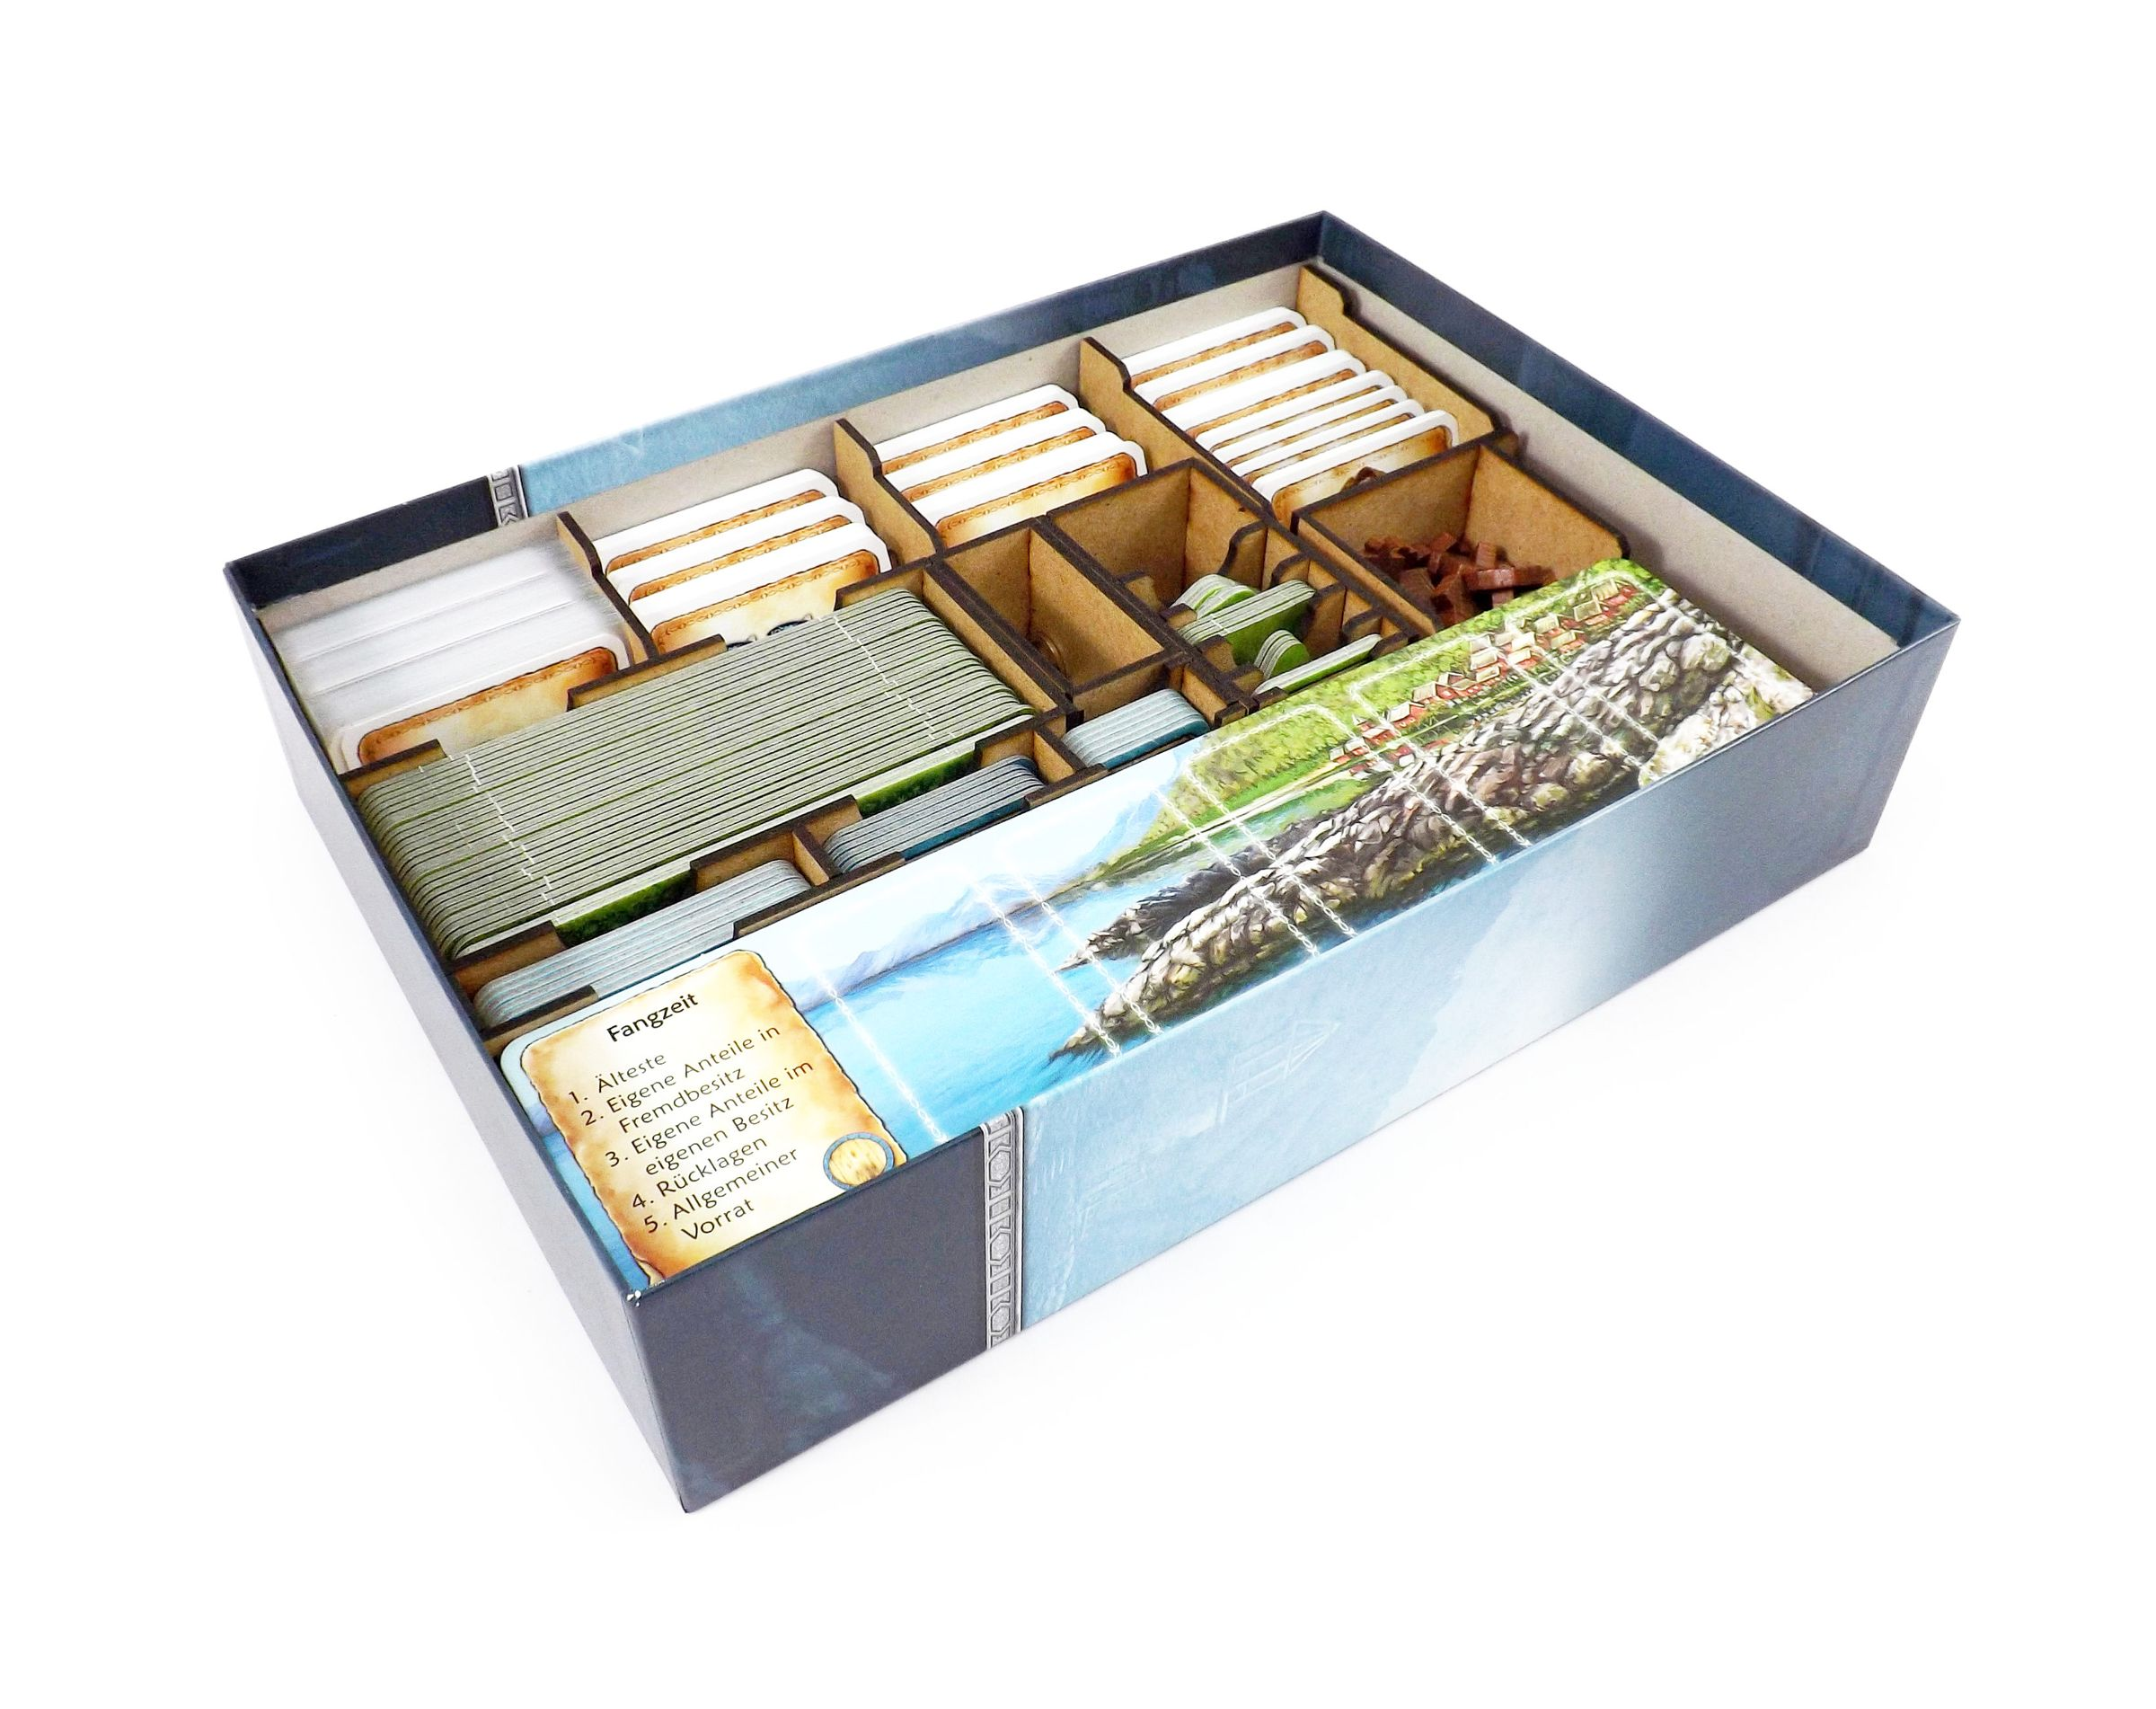 Boardgame Organizer for Nusfjord and expansion Plaice Deck